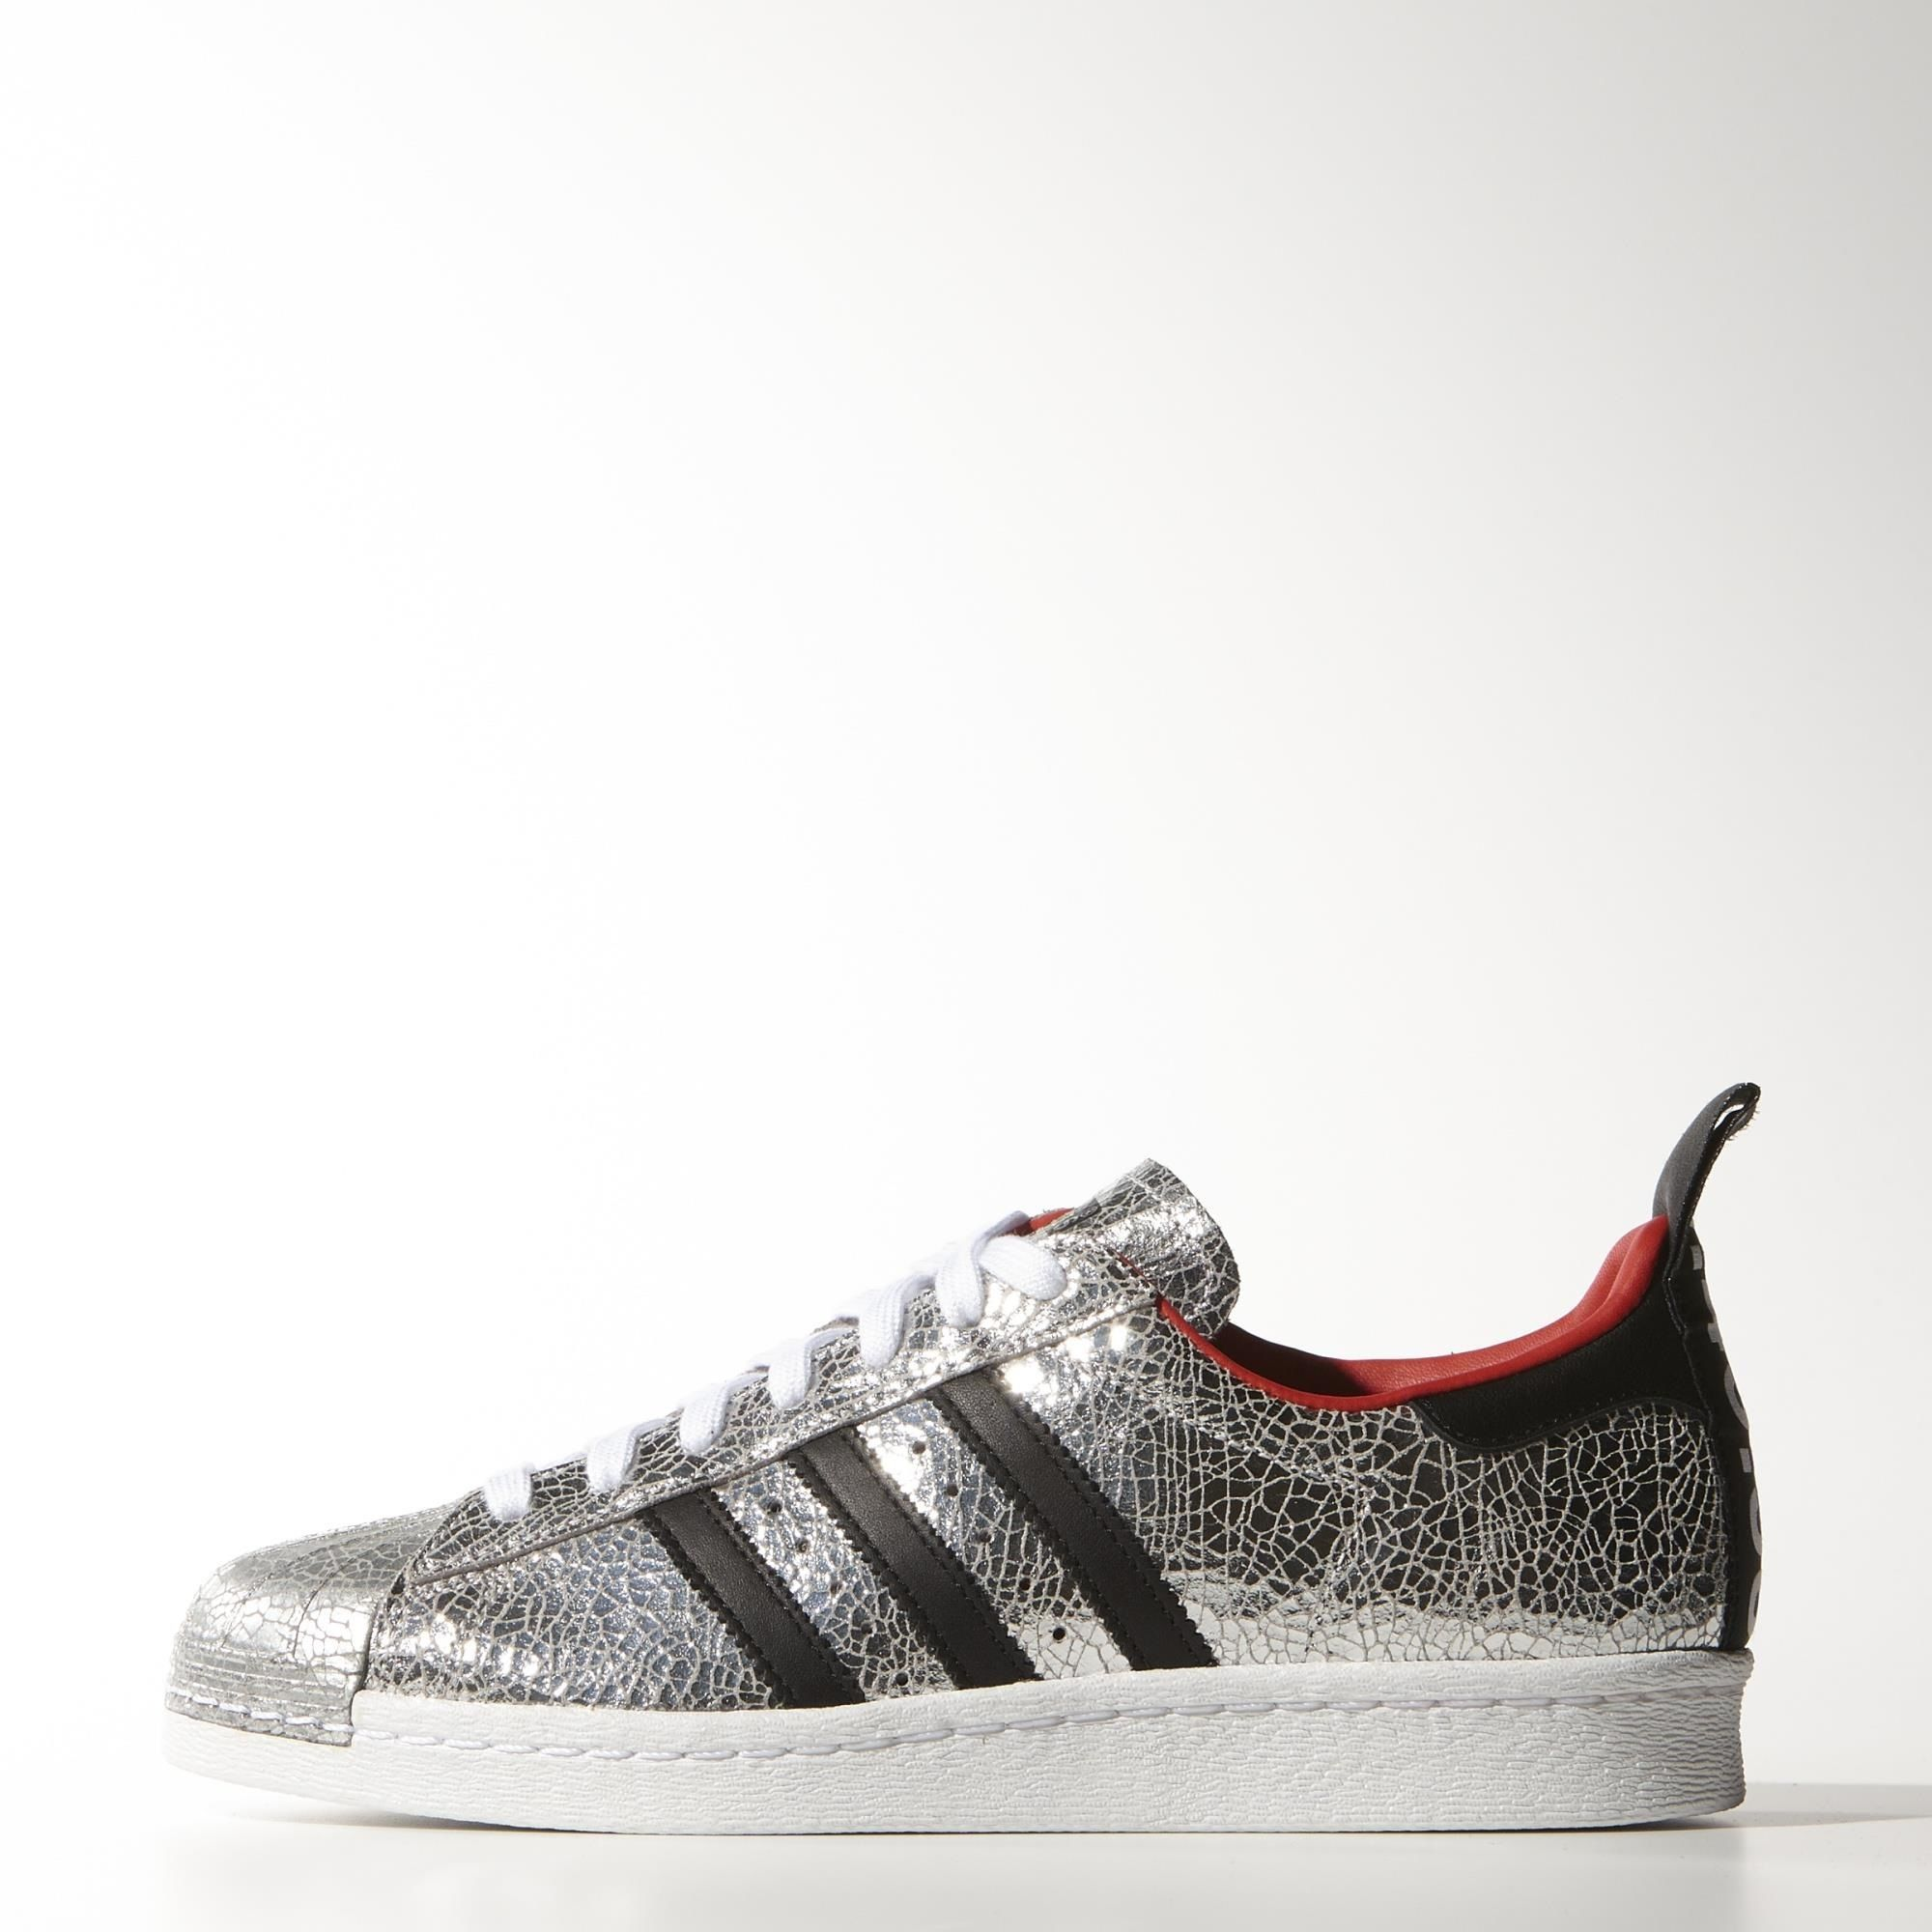 Adidas Superstar 80s Women